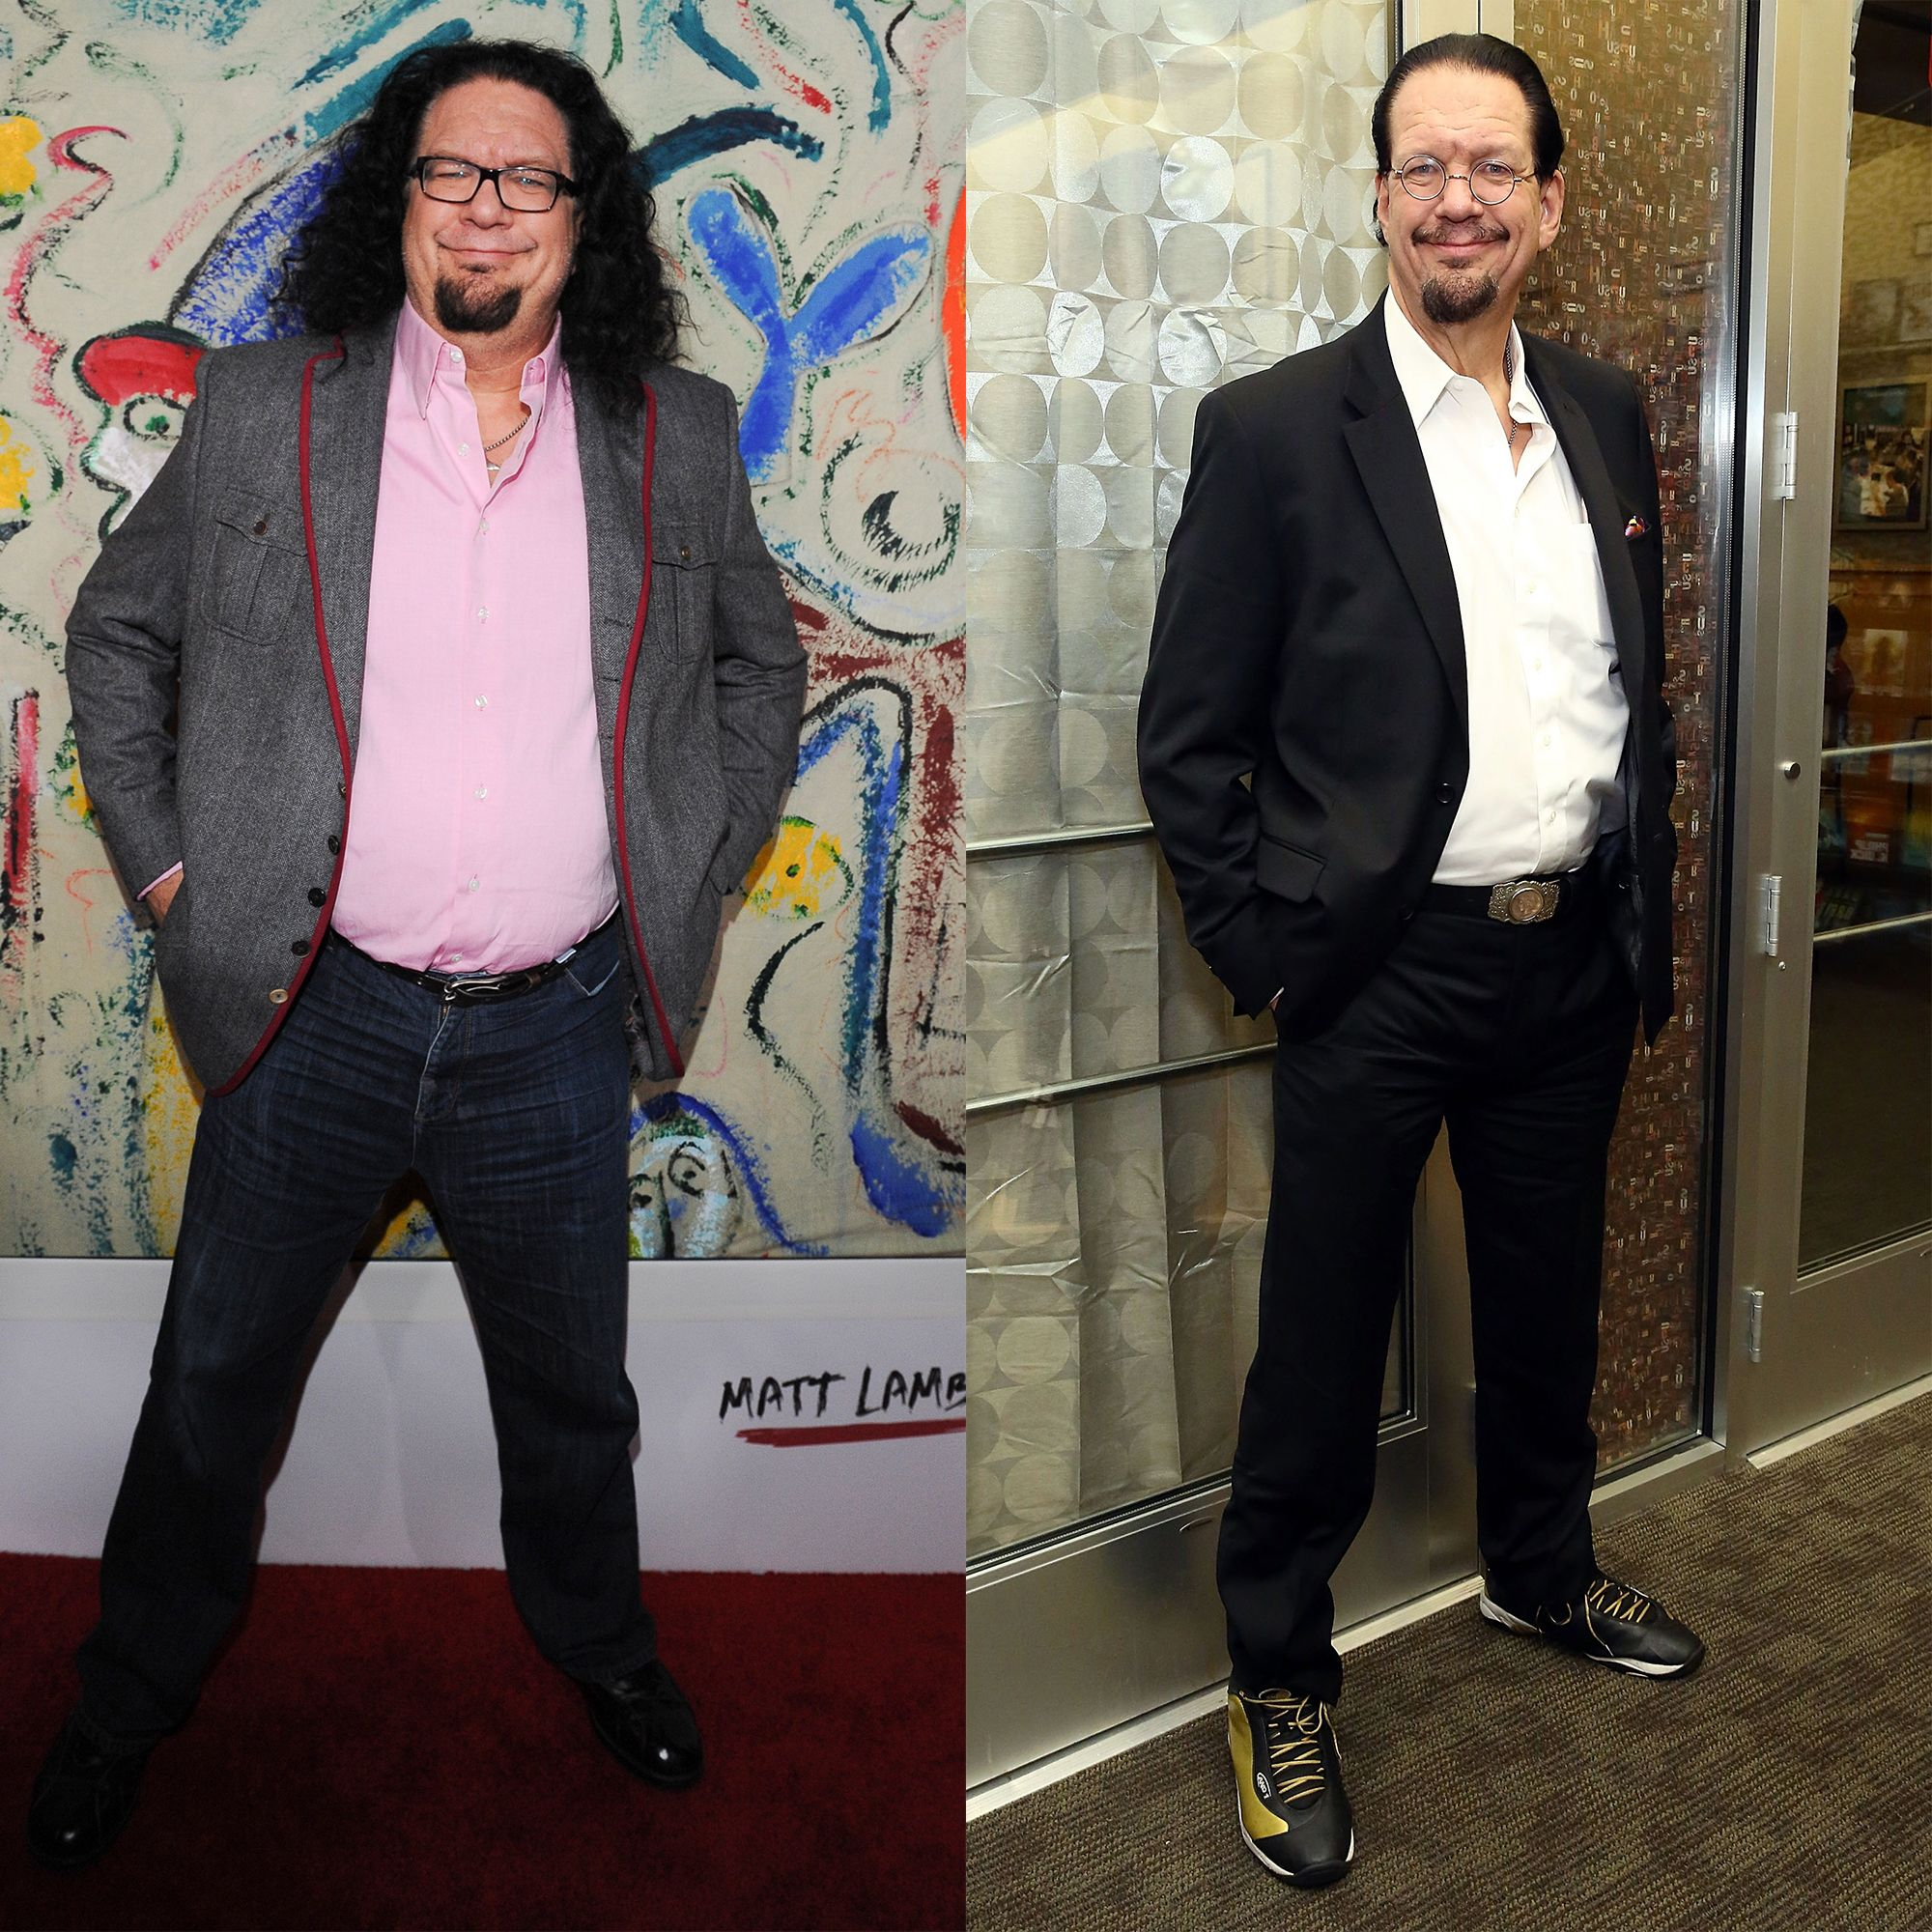 Penn Jillette Loses Over 100 Pounds on Potato Diet - Penn